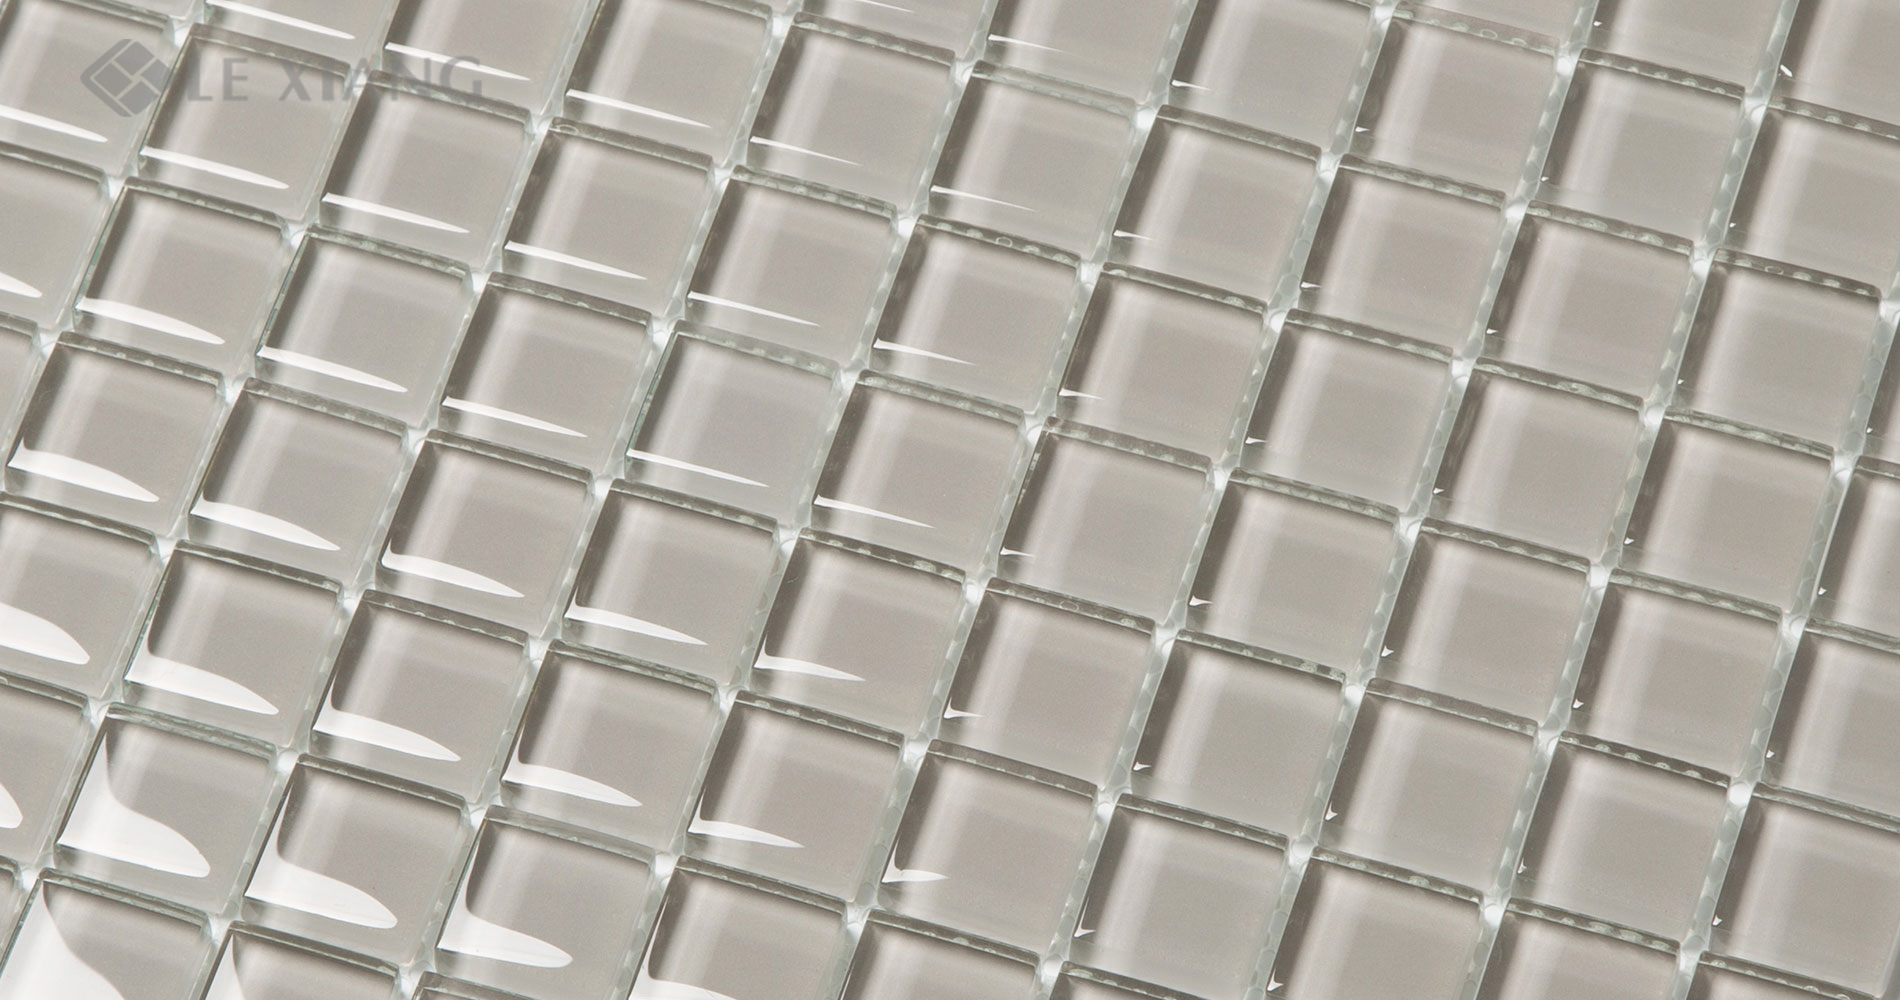 25mm-Square-Crystal-Glass-Blue-Mosaic-Tile-Backsplash-22